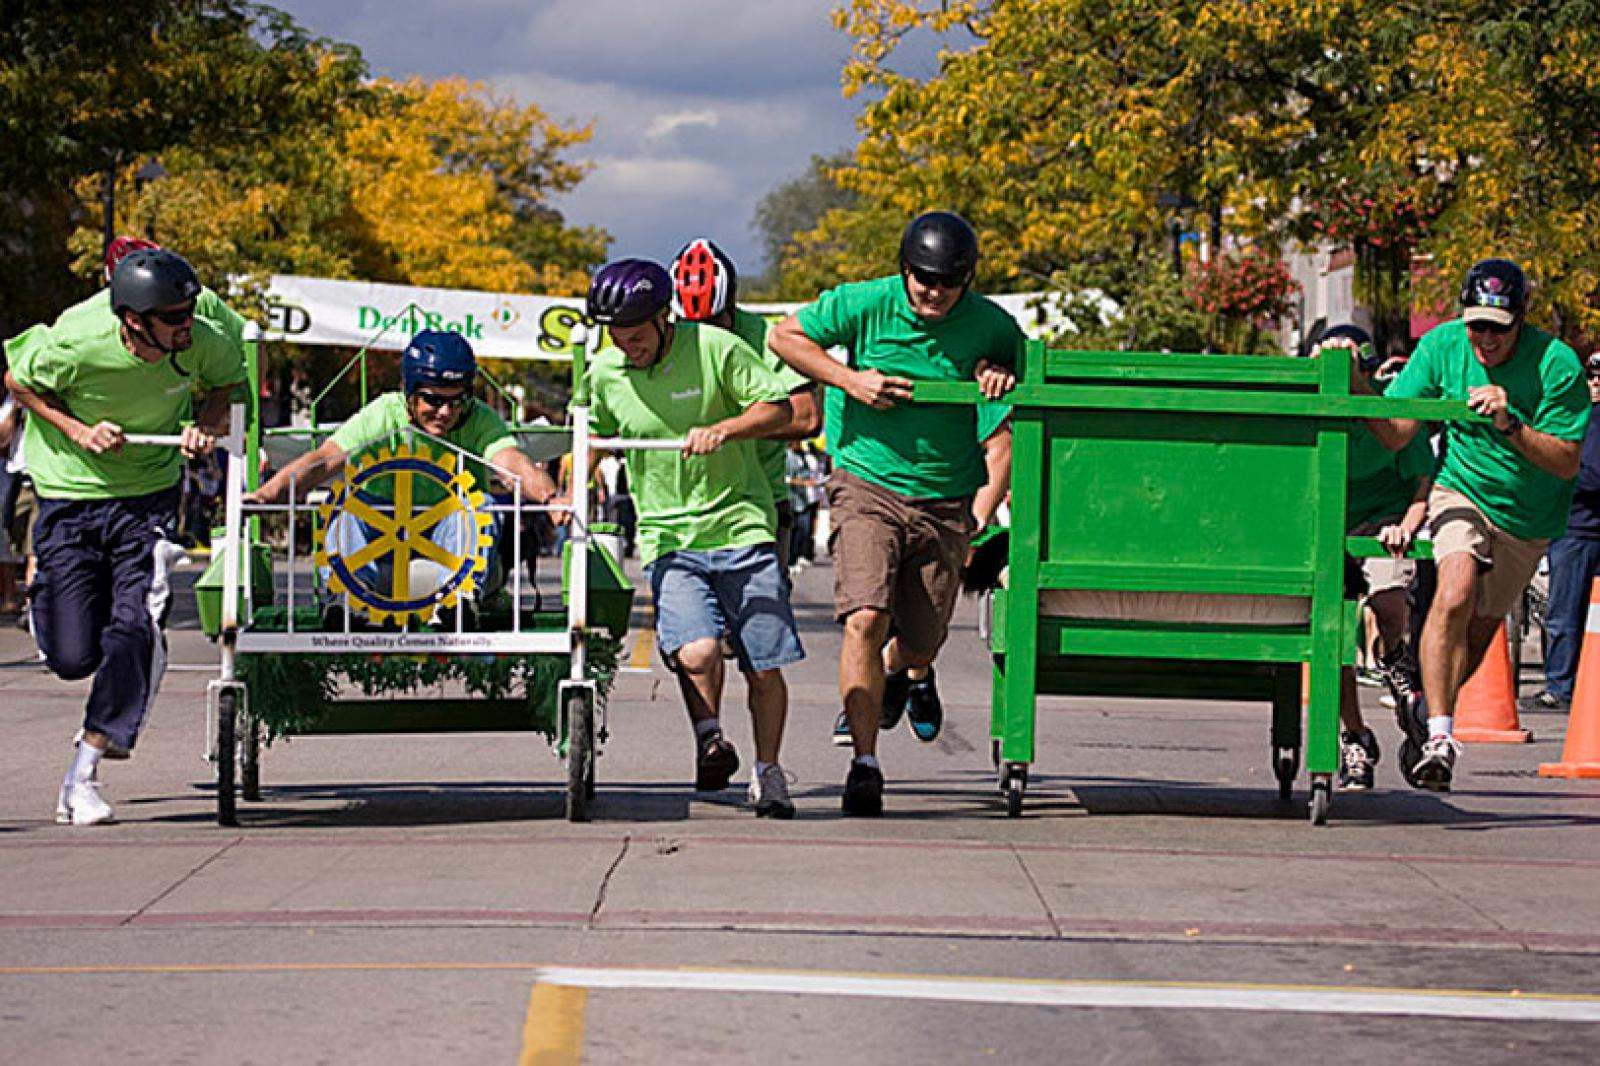 Landscapers compete in Amazing Bed Race.